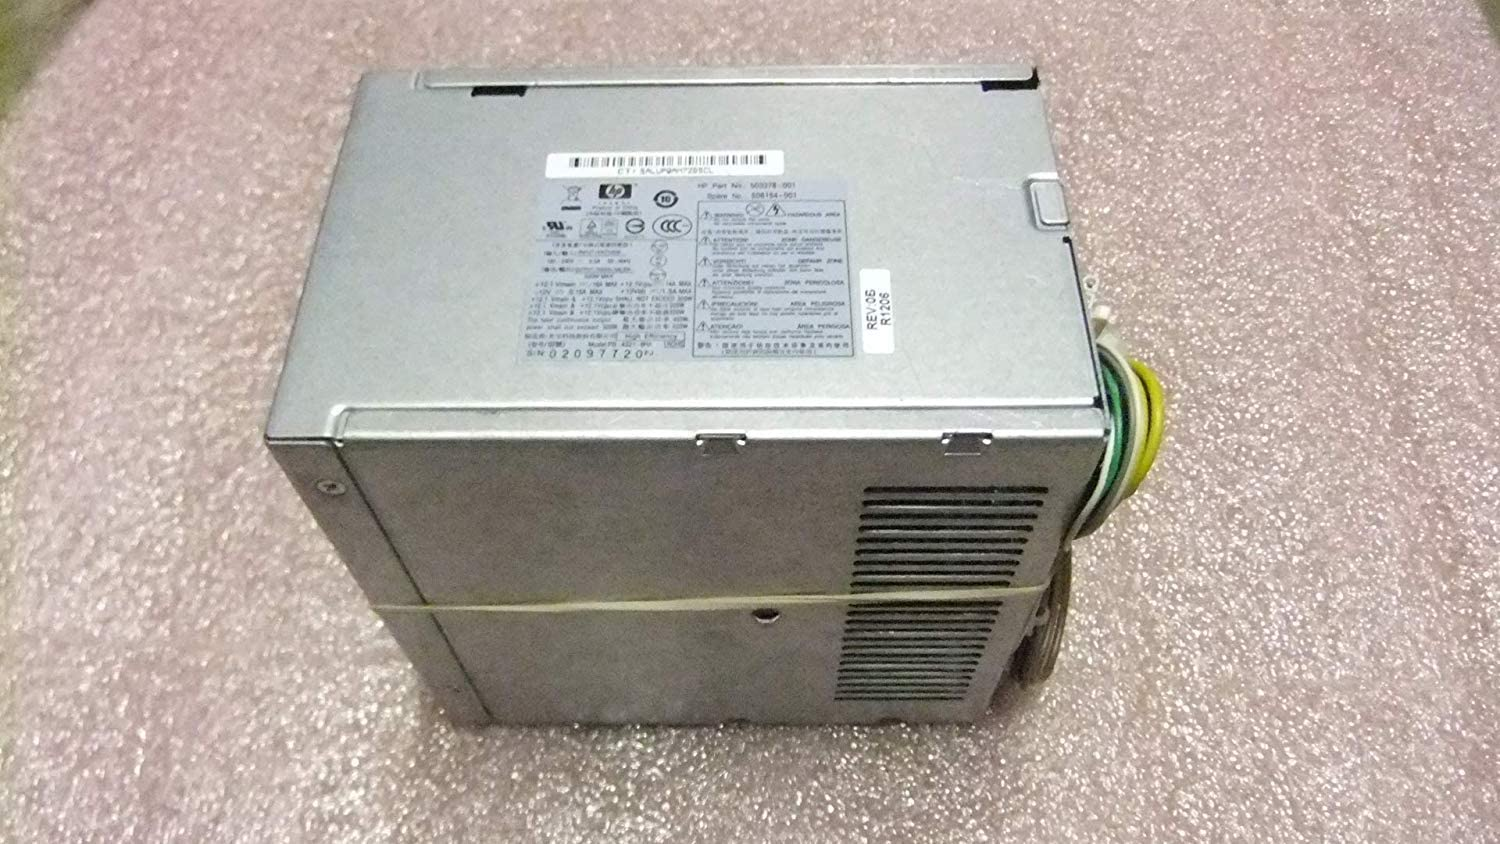 HP Compaq 320 Watt Power Supply 6005 Pro MicroTower 503378-001 508154-001